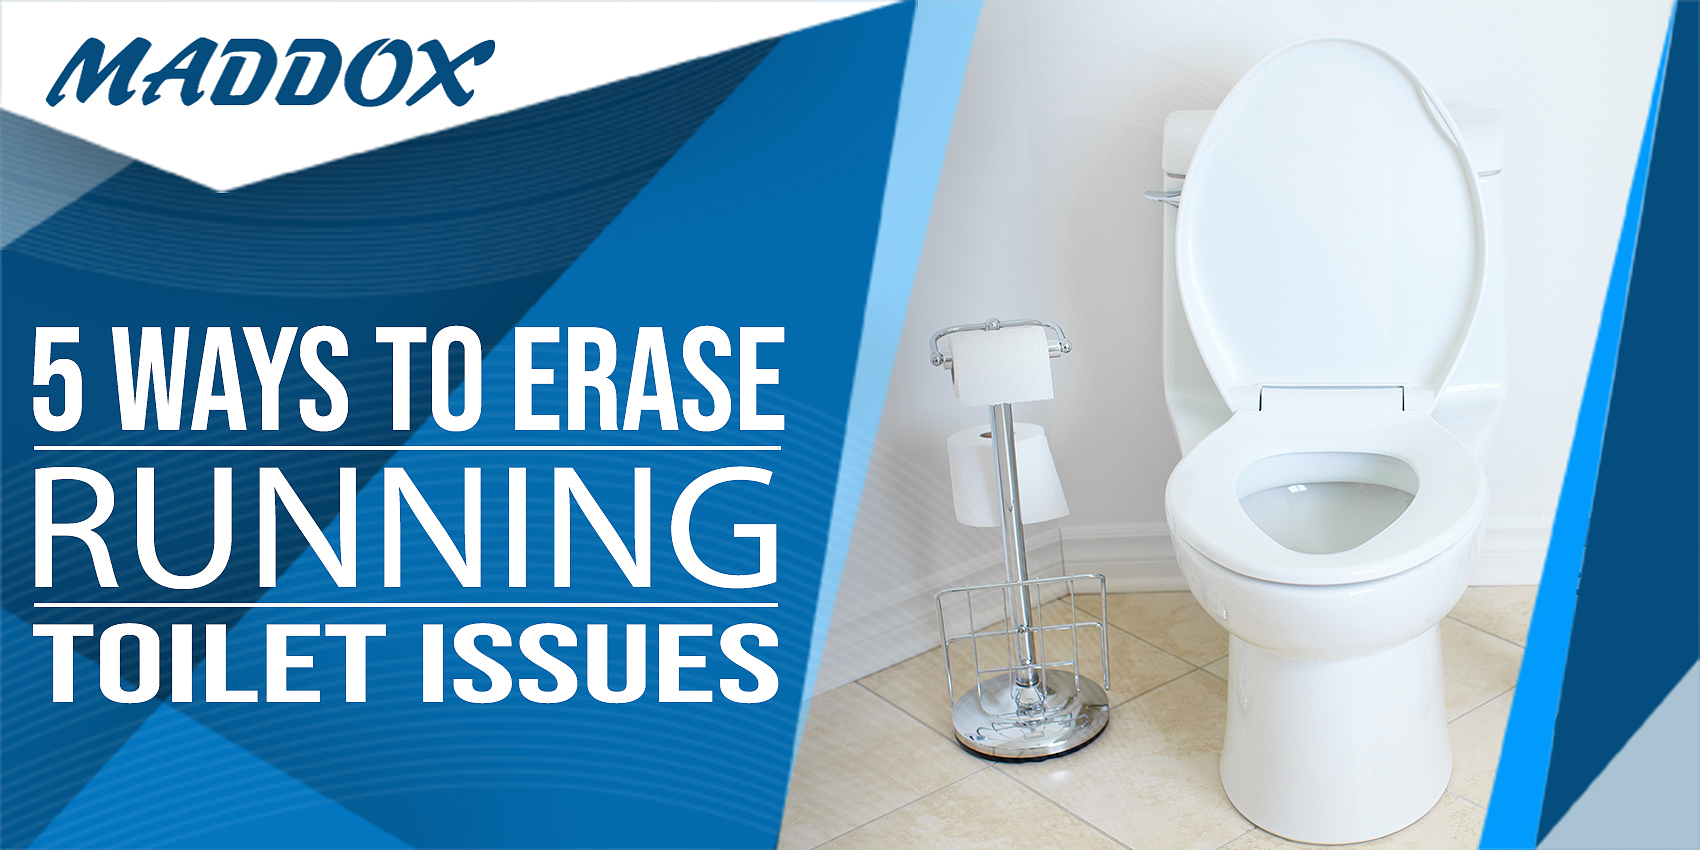 5 Ways to Erase Running Toilet Issues